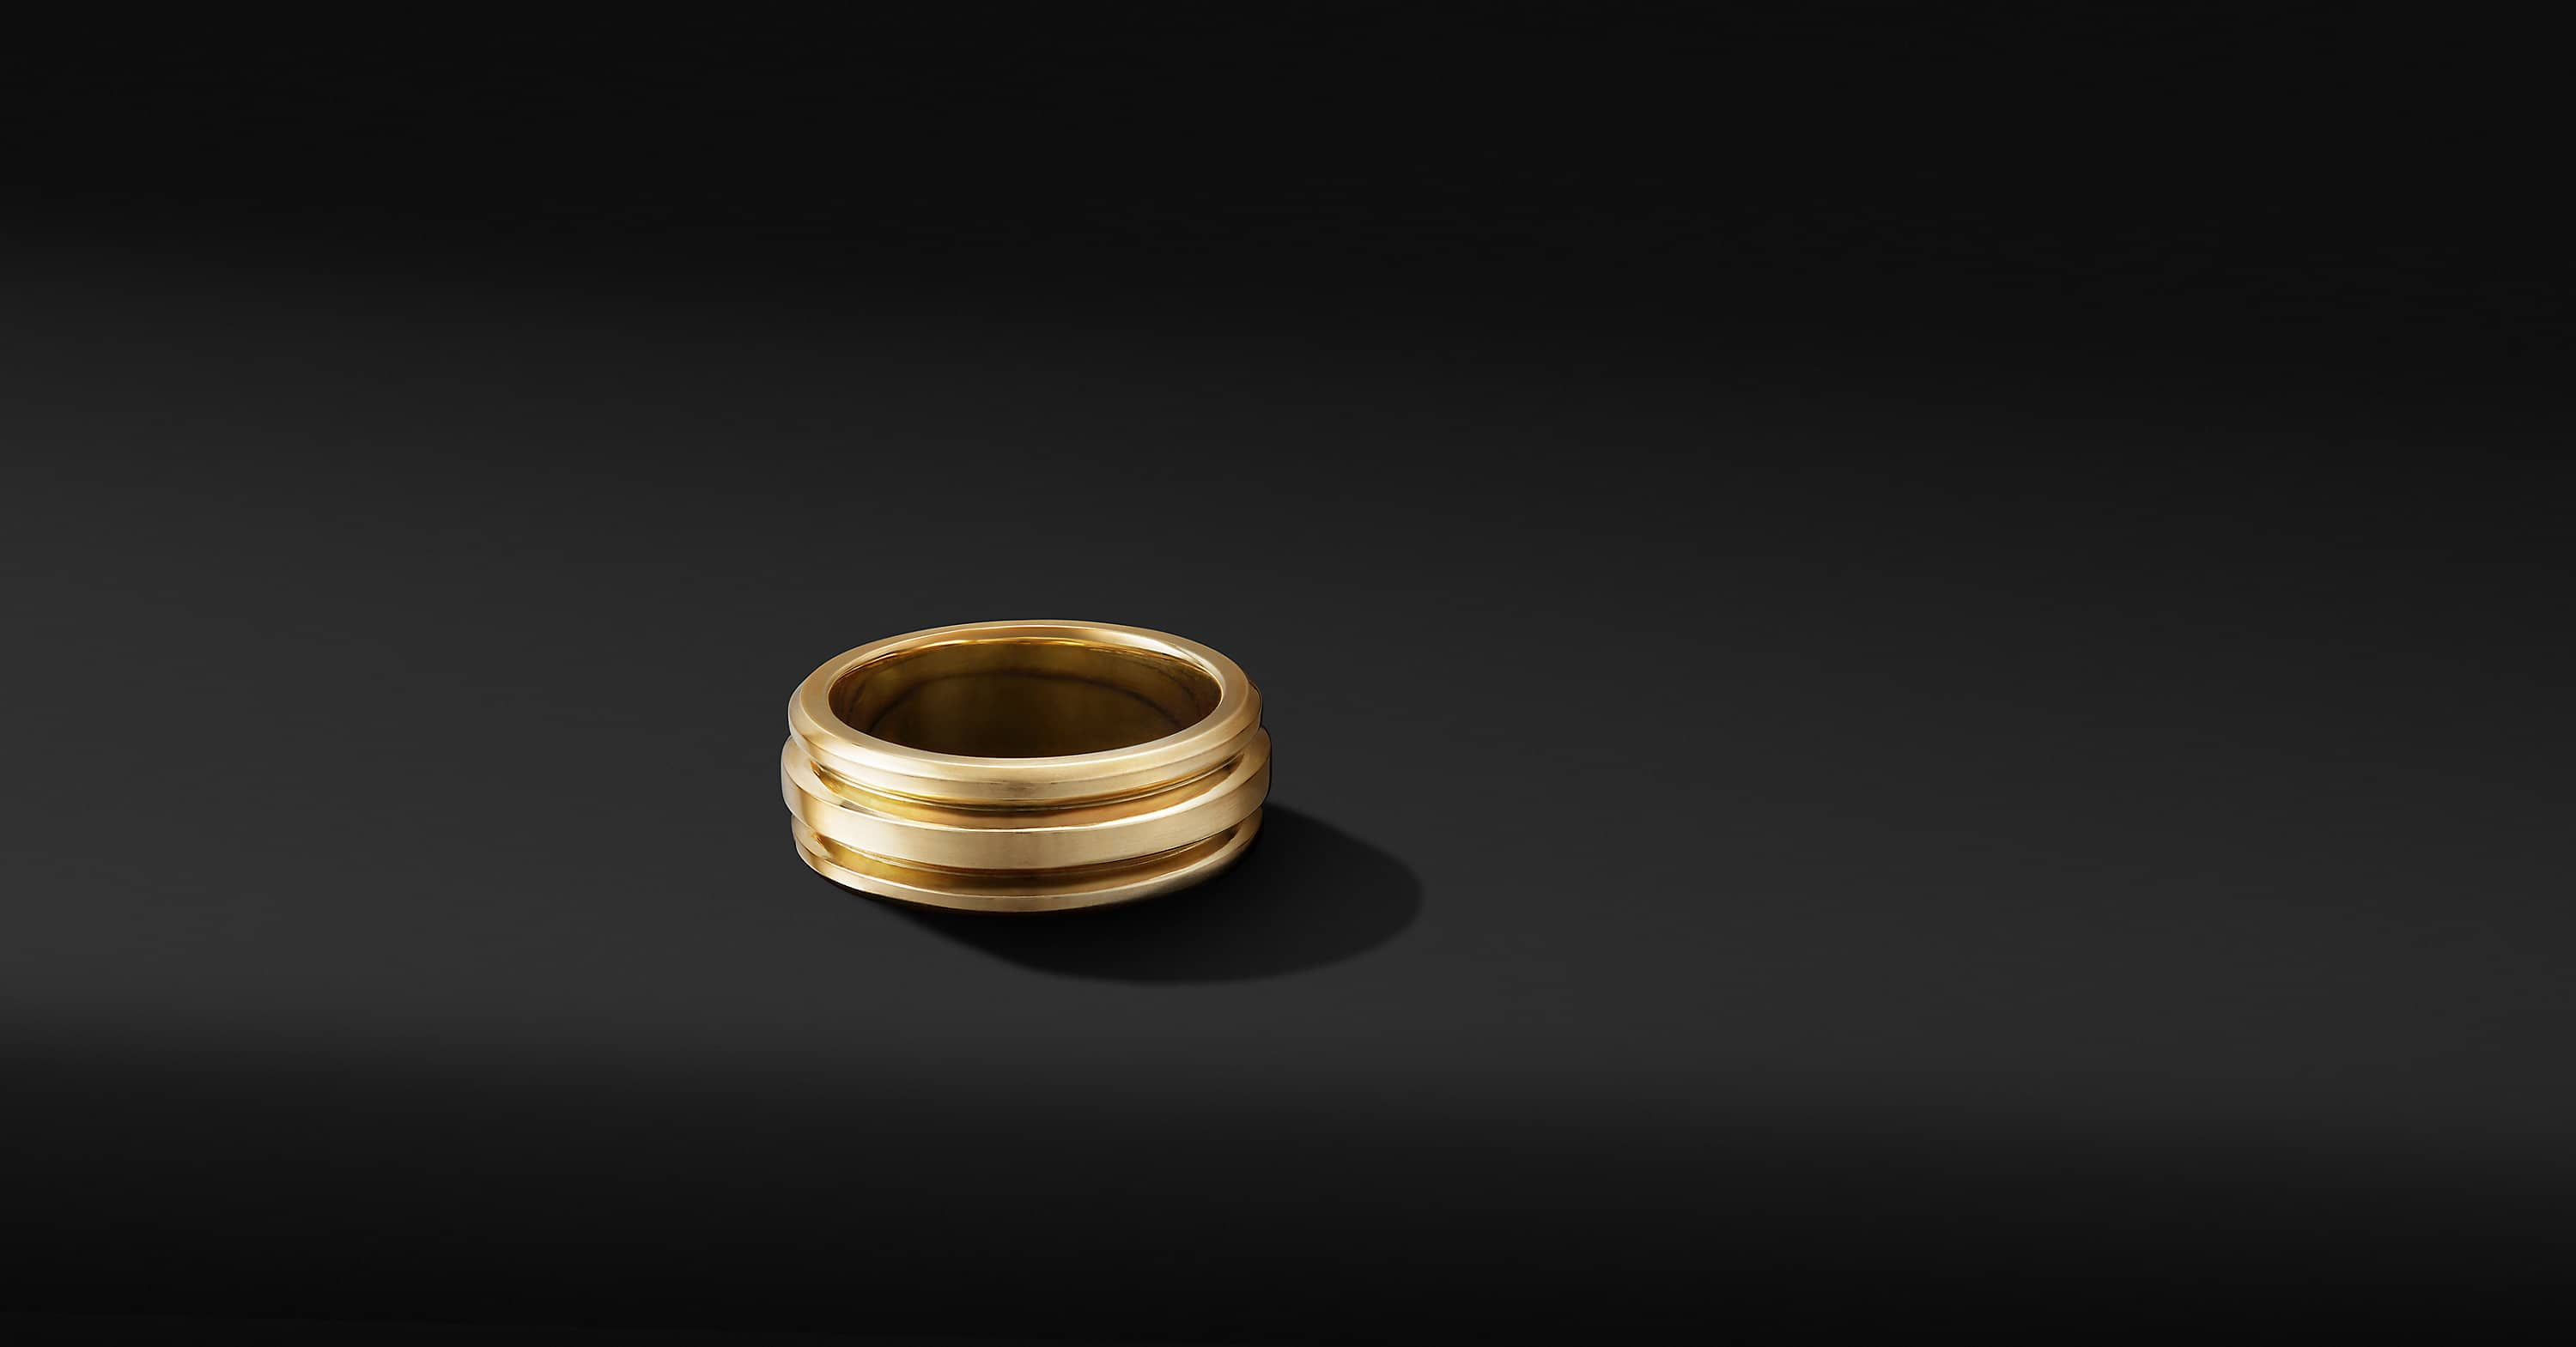 Deco Band Ring in 18K Yellow Gold, 8.5mm